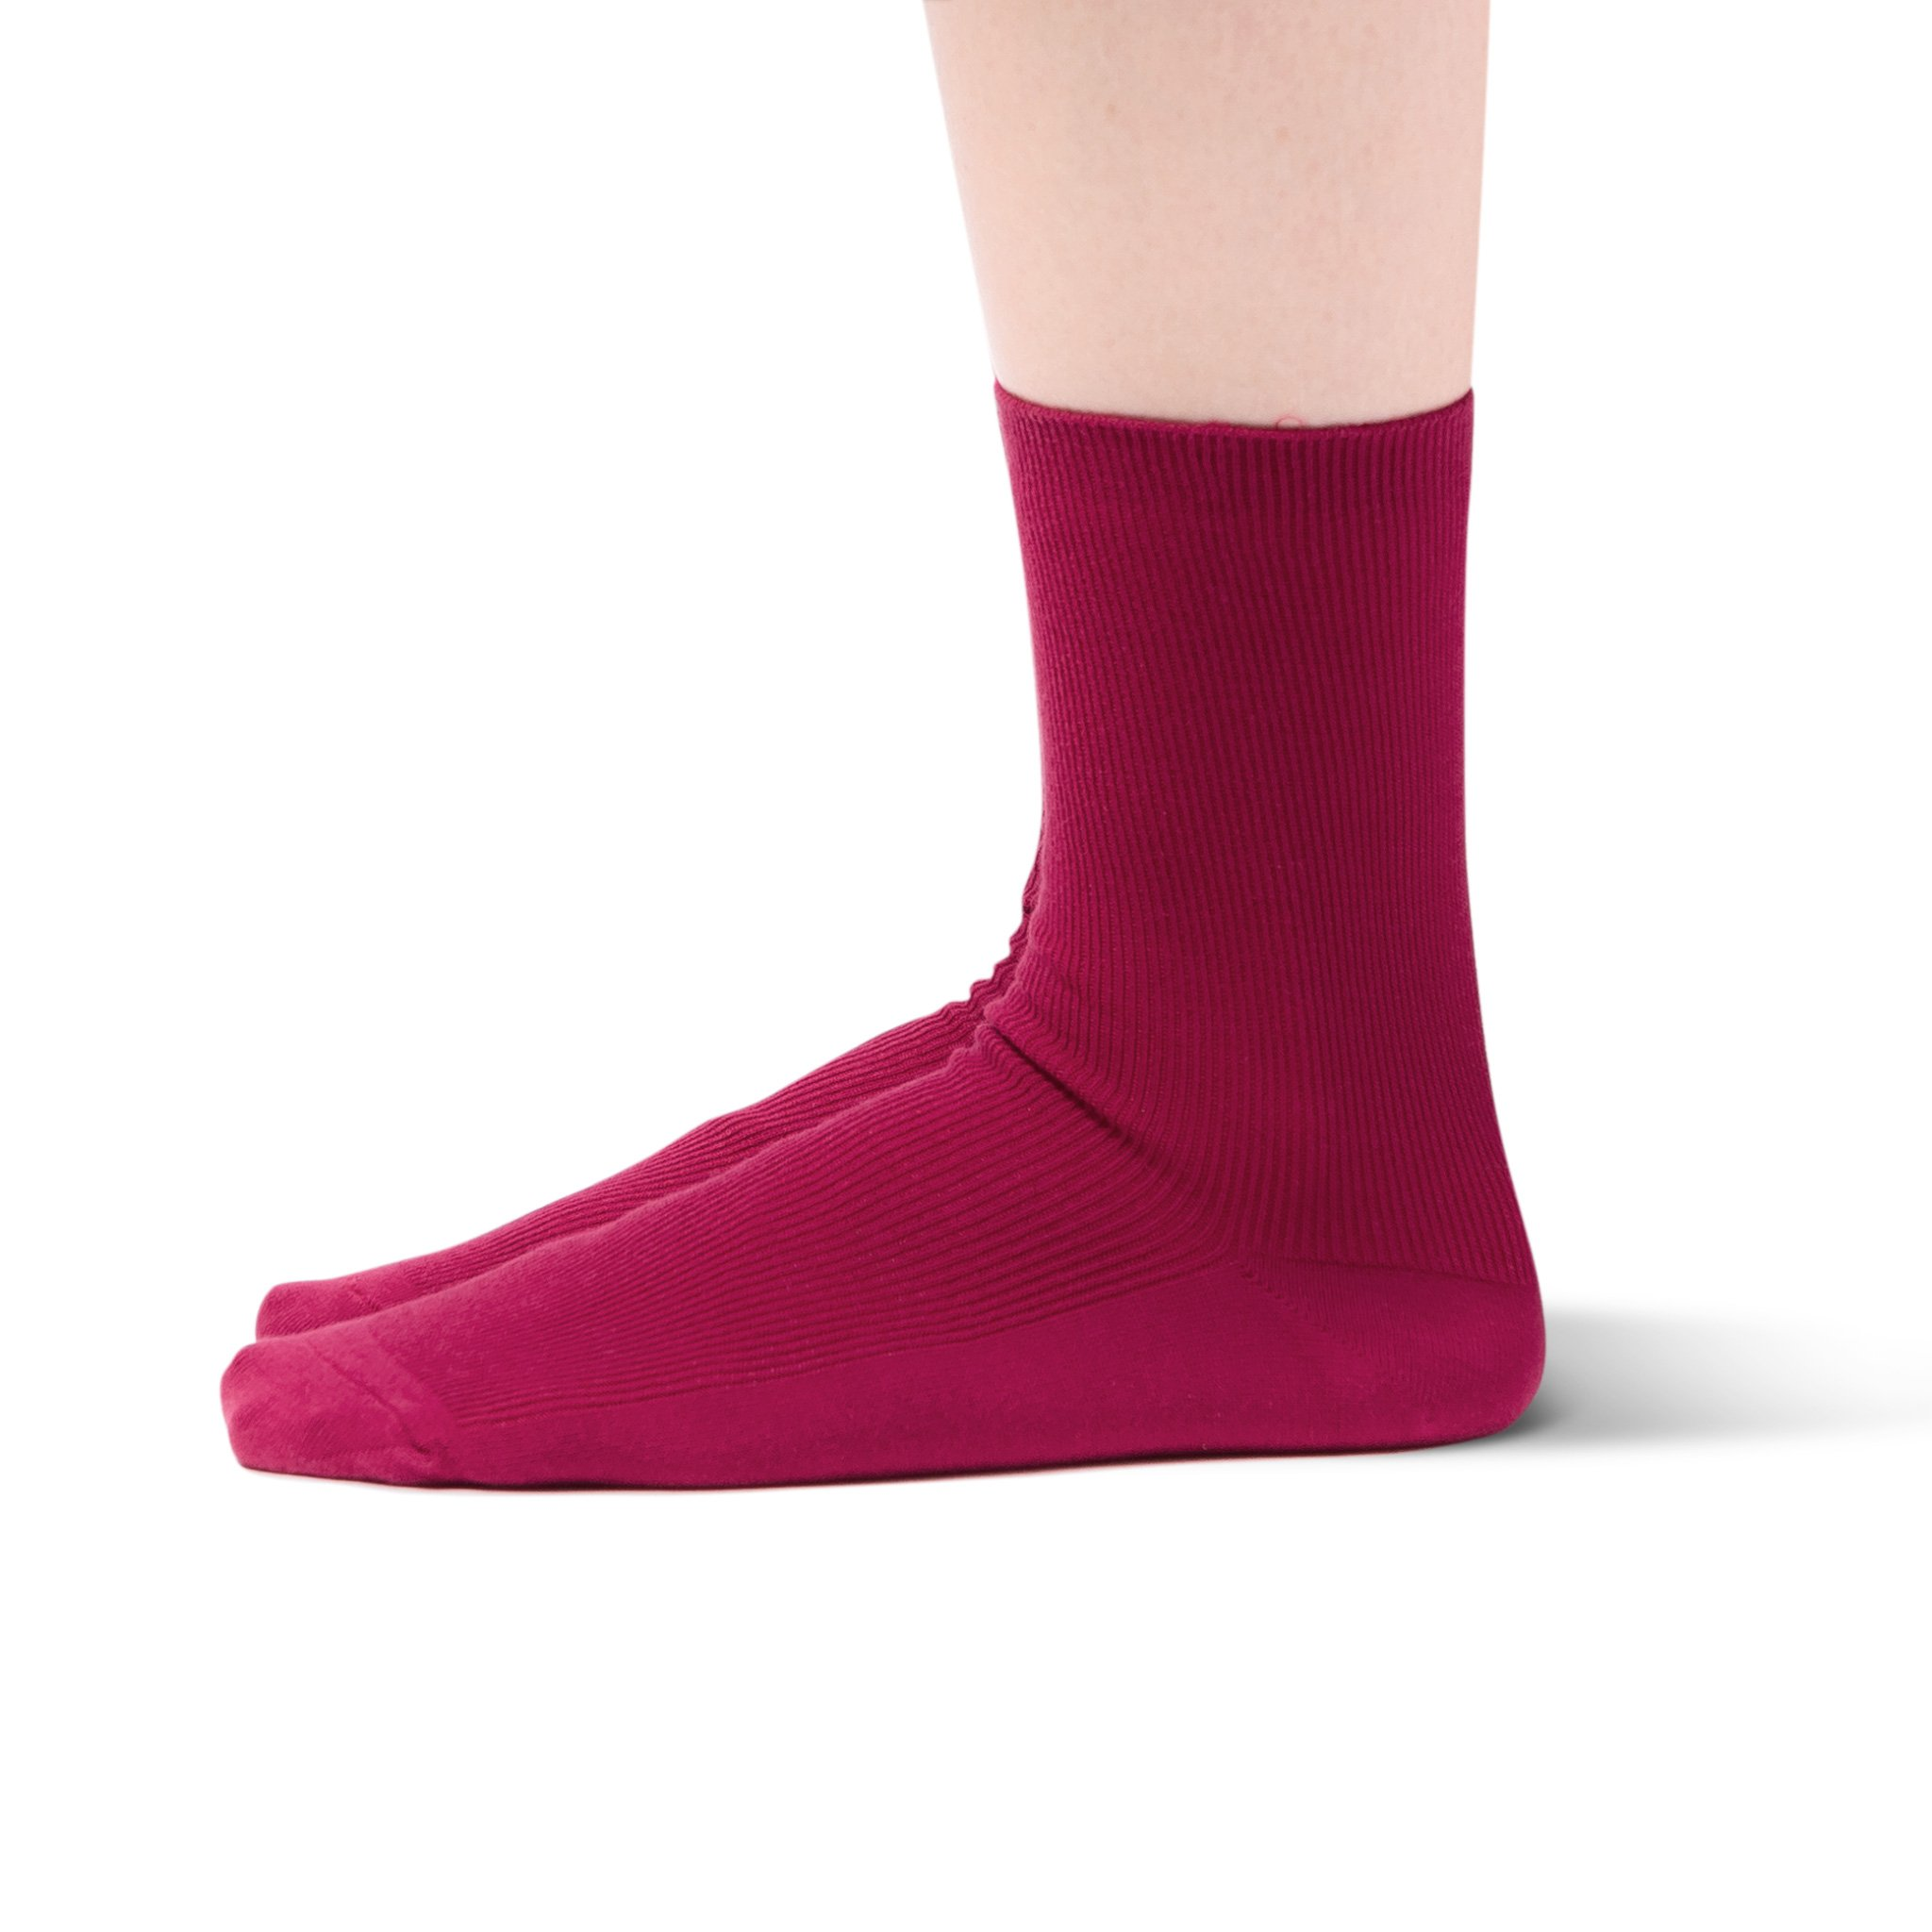 Sheec Basics - Fine Ribbed Cotton Socks (8 Pairs) SetB by Sheec (Image #3)